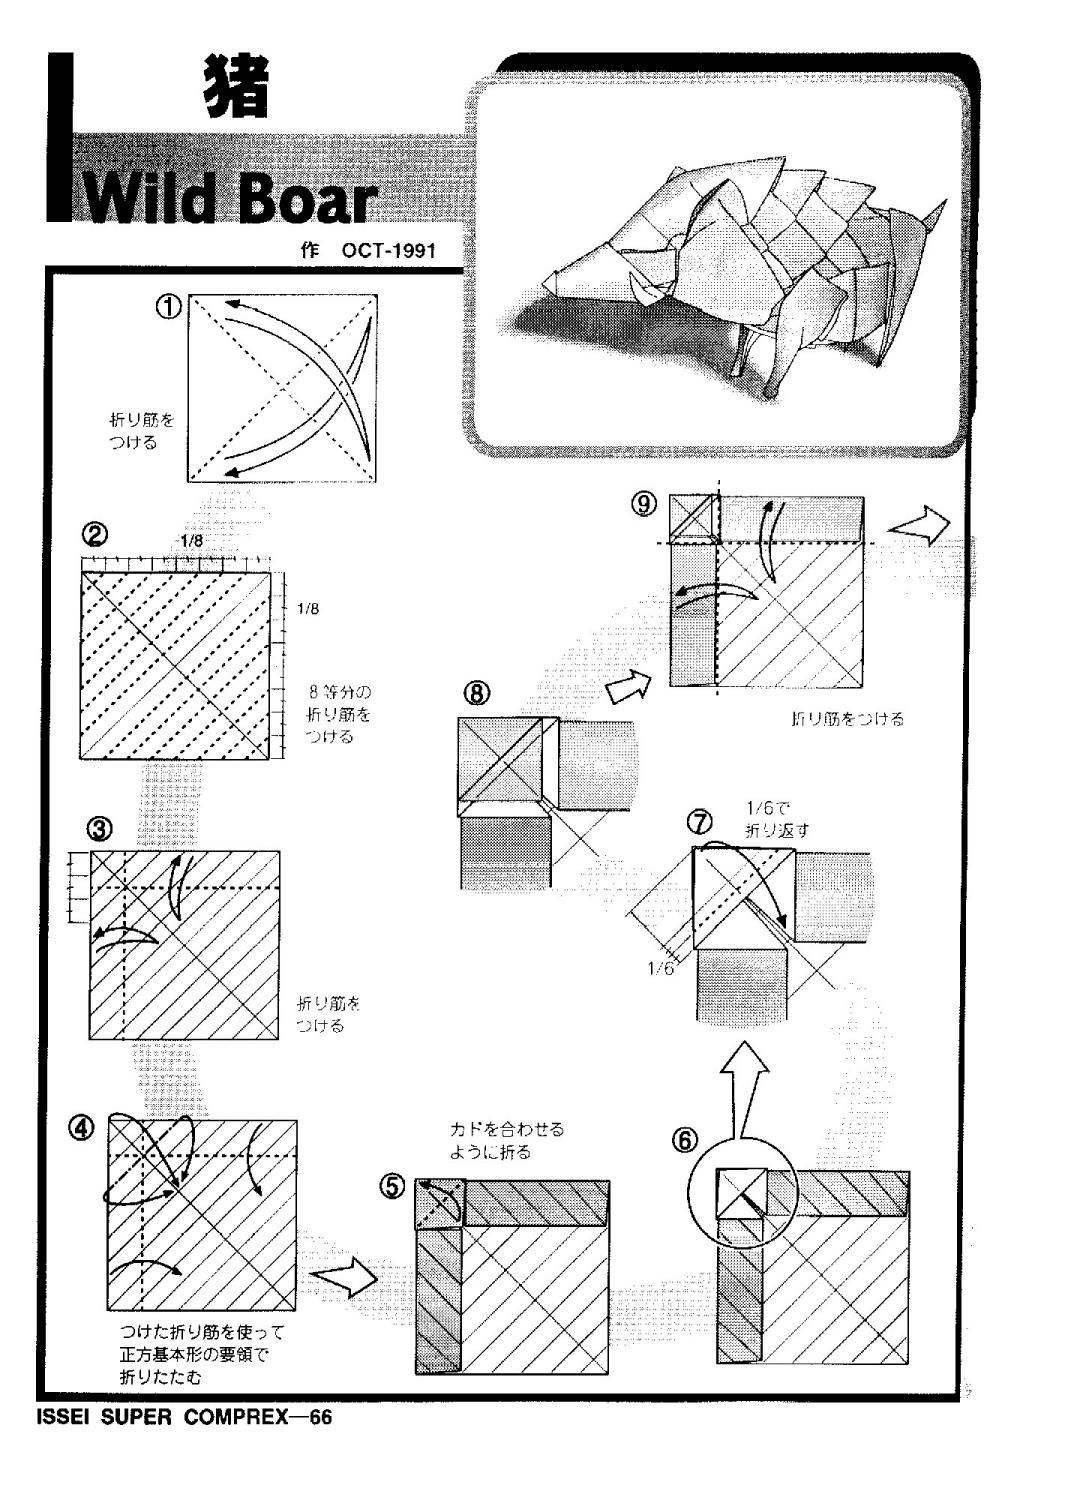 origami wolf instructions diagram eye and ear printable super complex yoshino issei animals newspaper